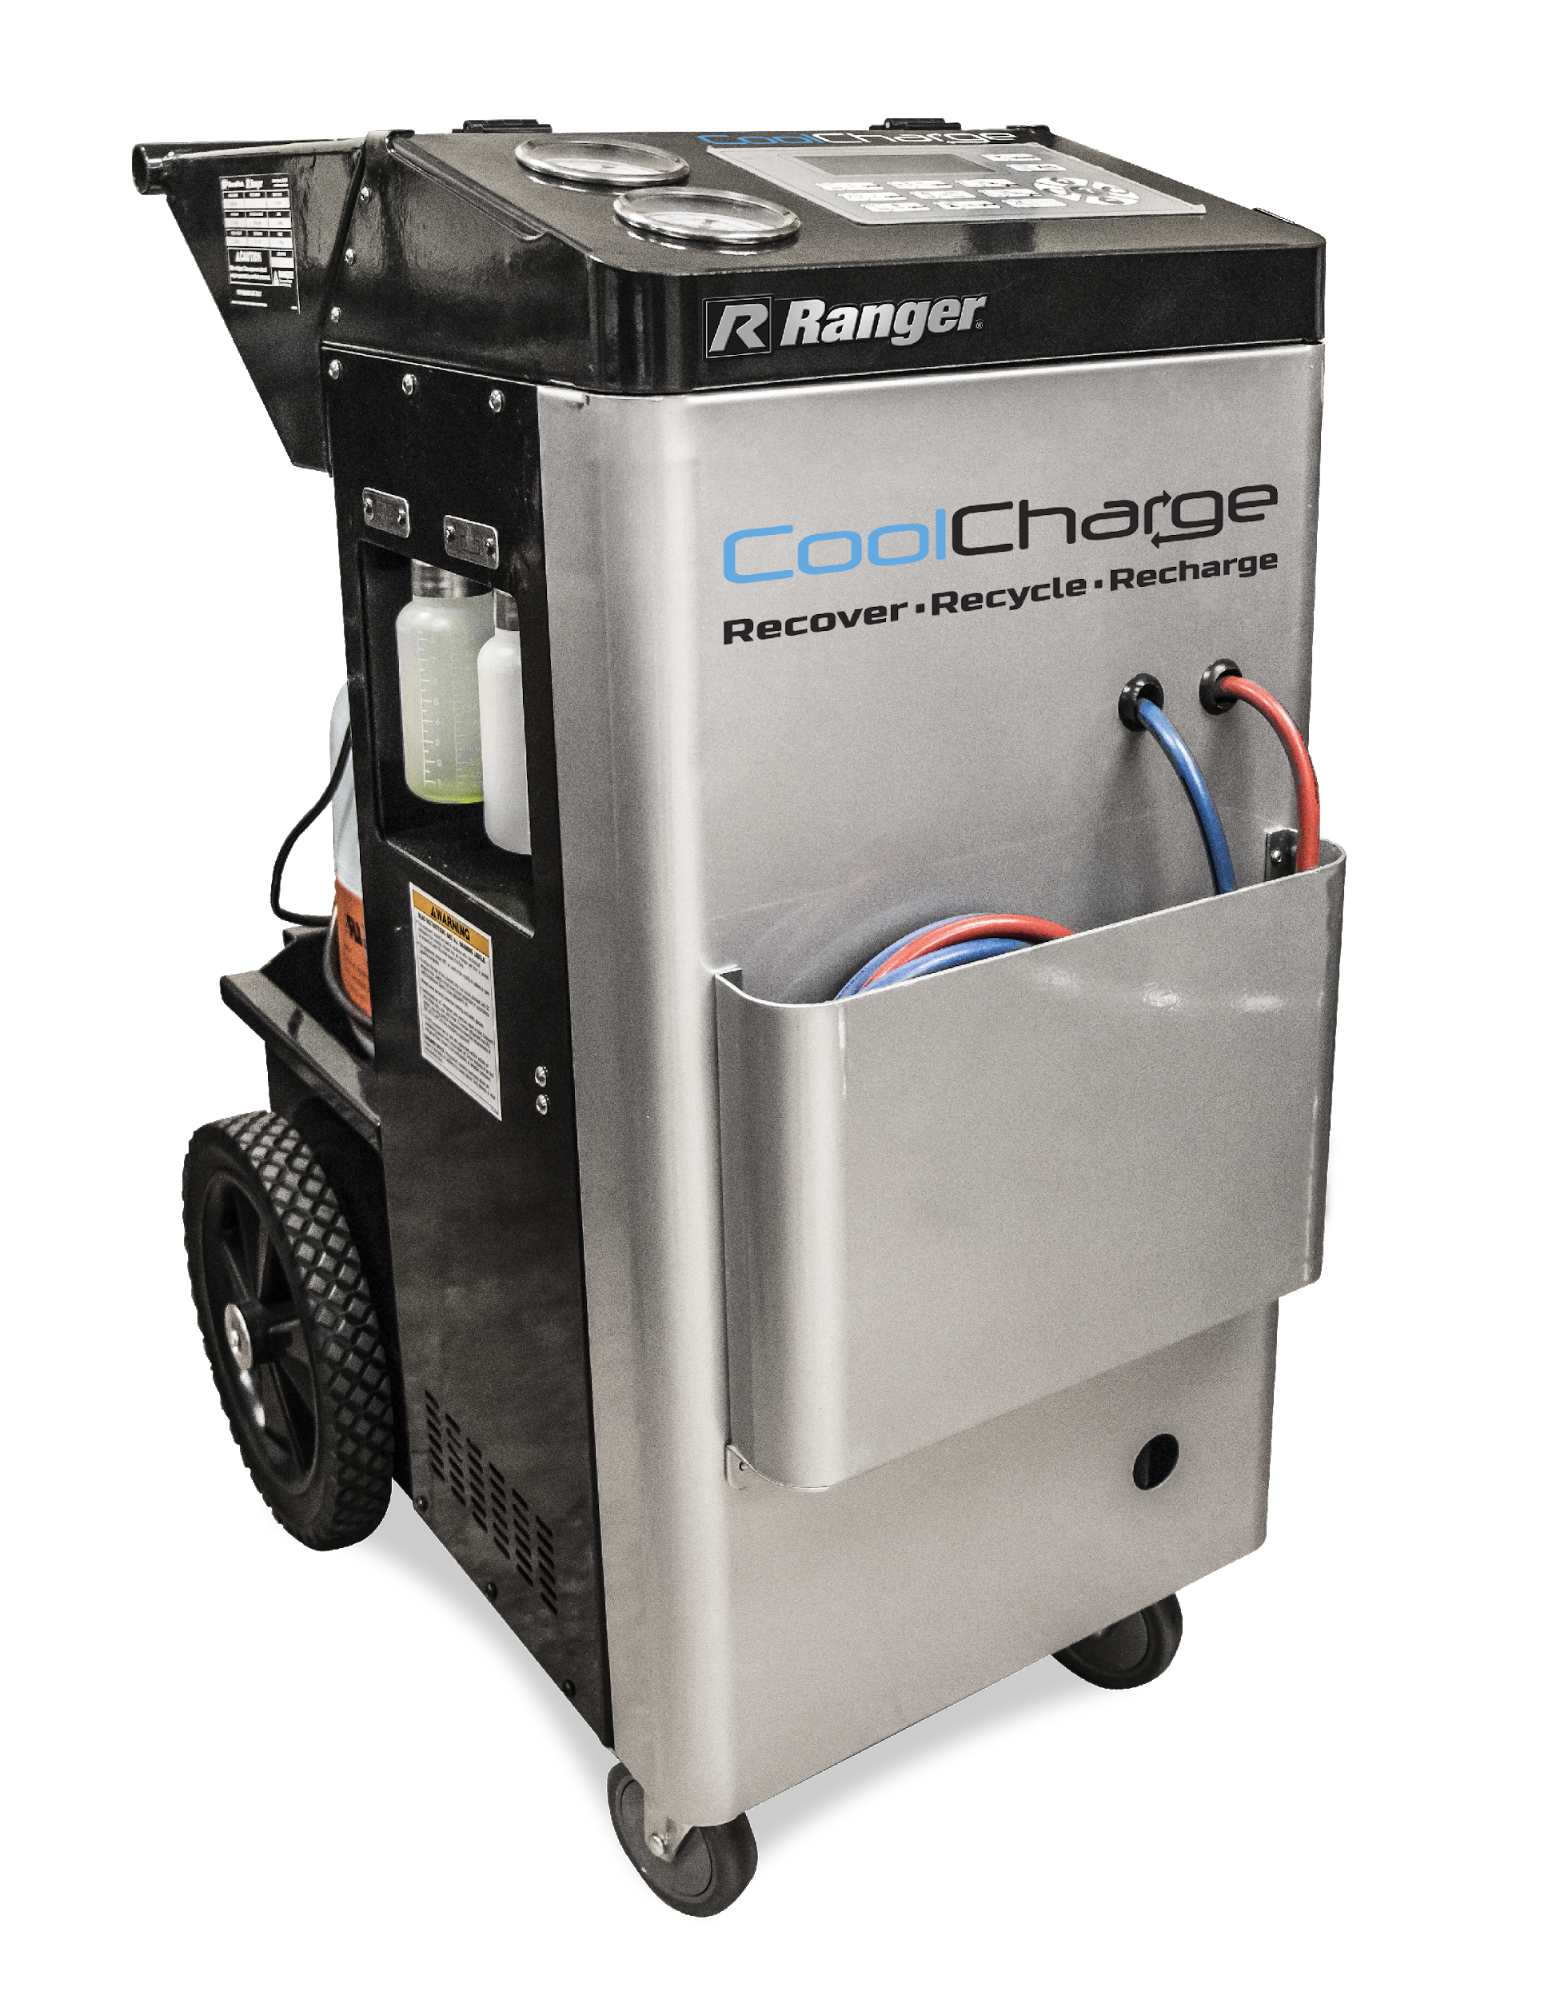 Ranger CoolCharge Machine Recharges Vehicle A/C Systems